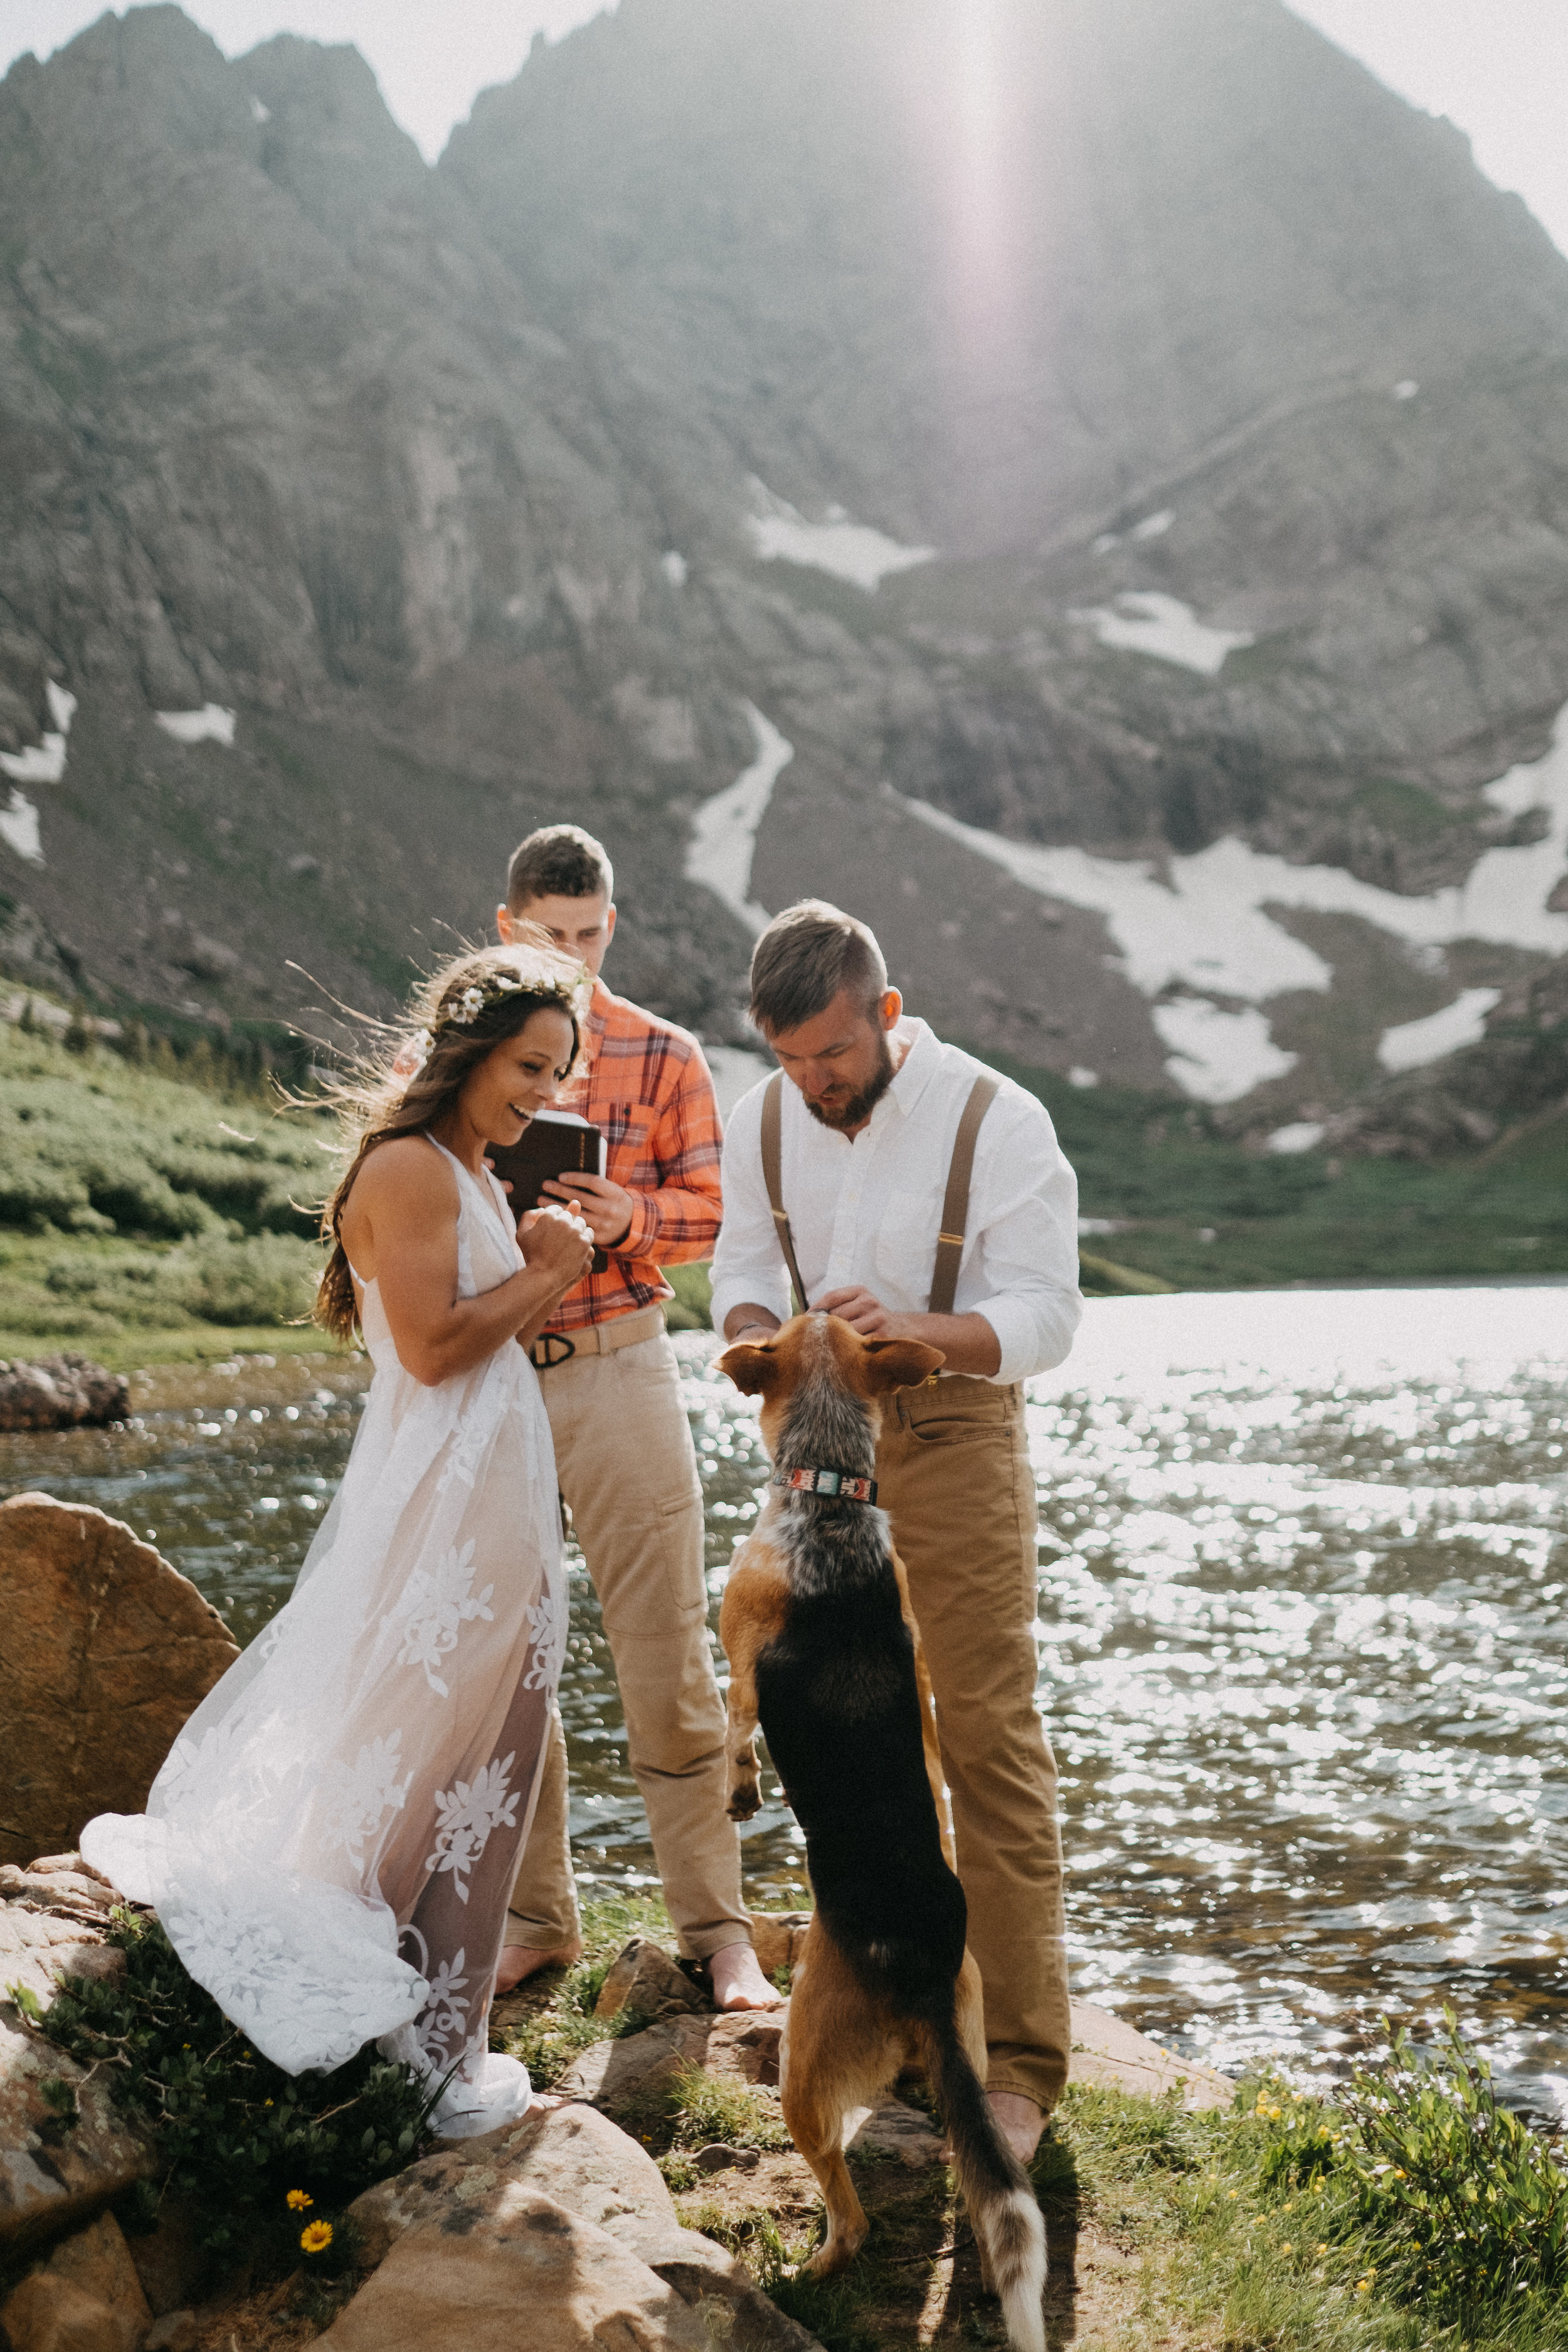 Bri + Dave alpine lake elopement in colorado - It doesn't get much better than a 9 mile hike with your friends and your puppy as the ring bearer.